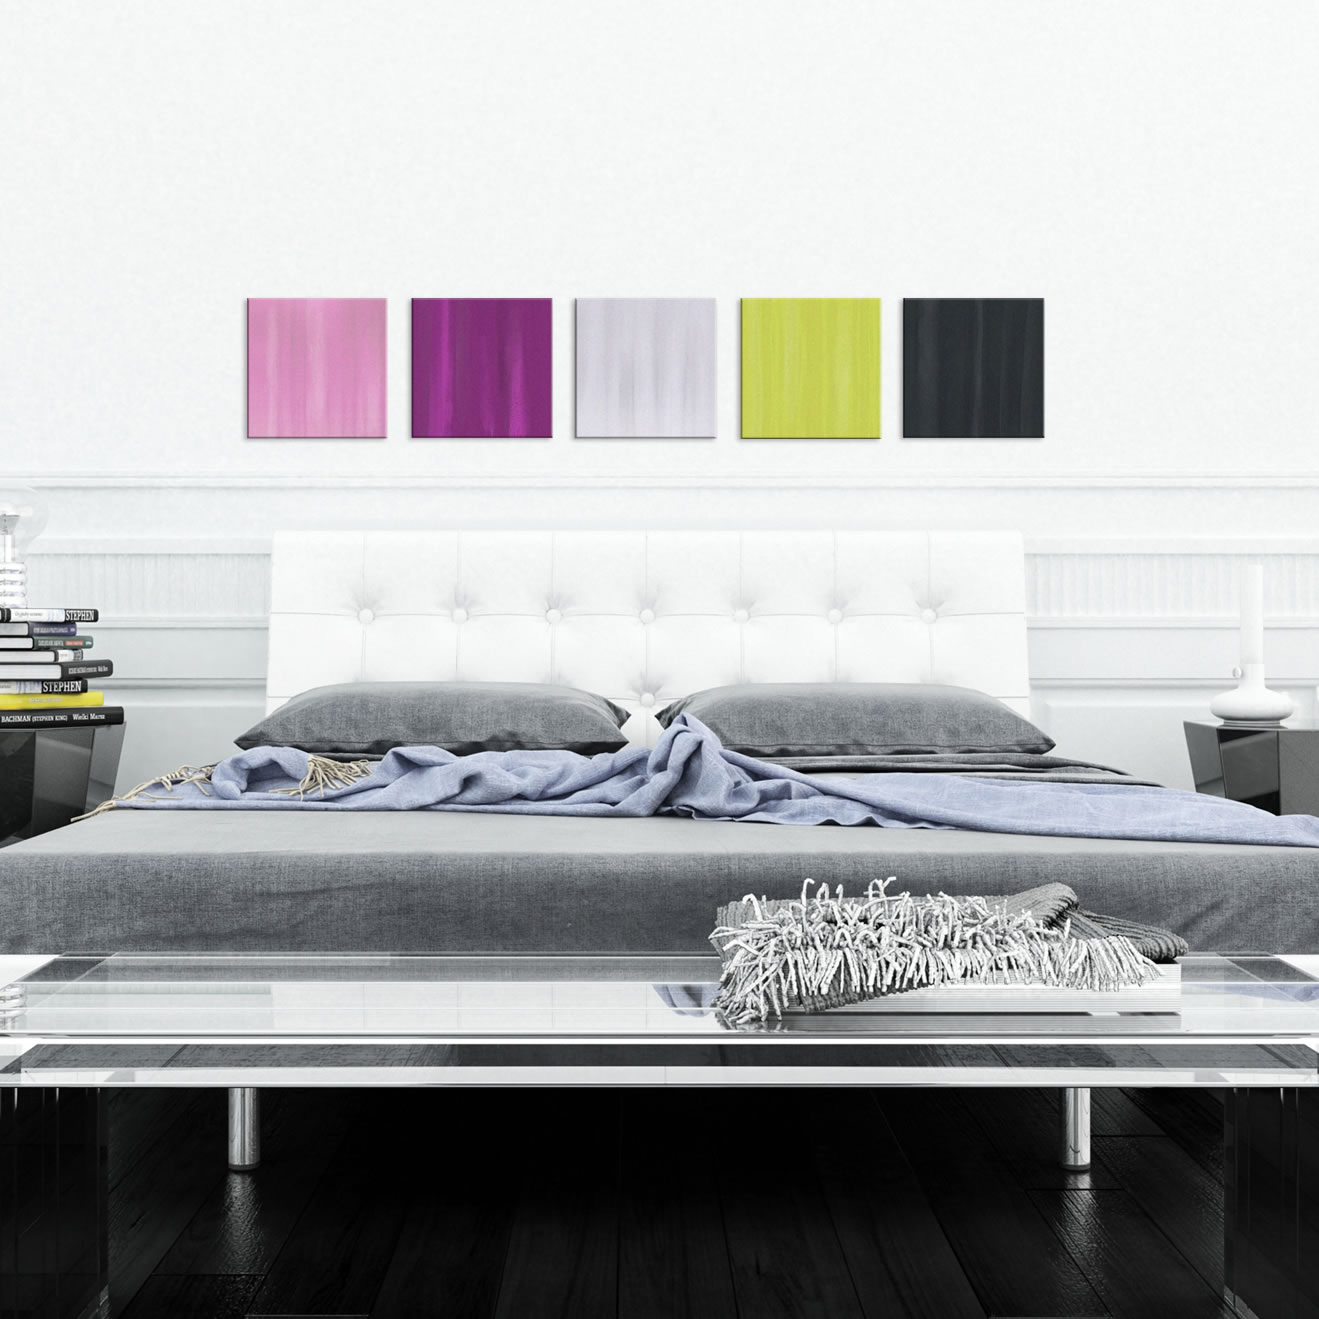 Field of Color - Colorful Contemporary Accents by Celeste Reiter - Lifestyle Image